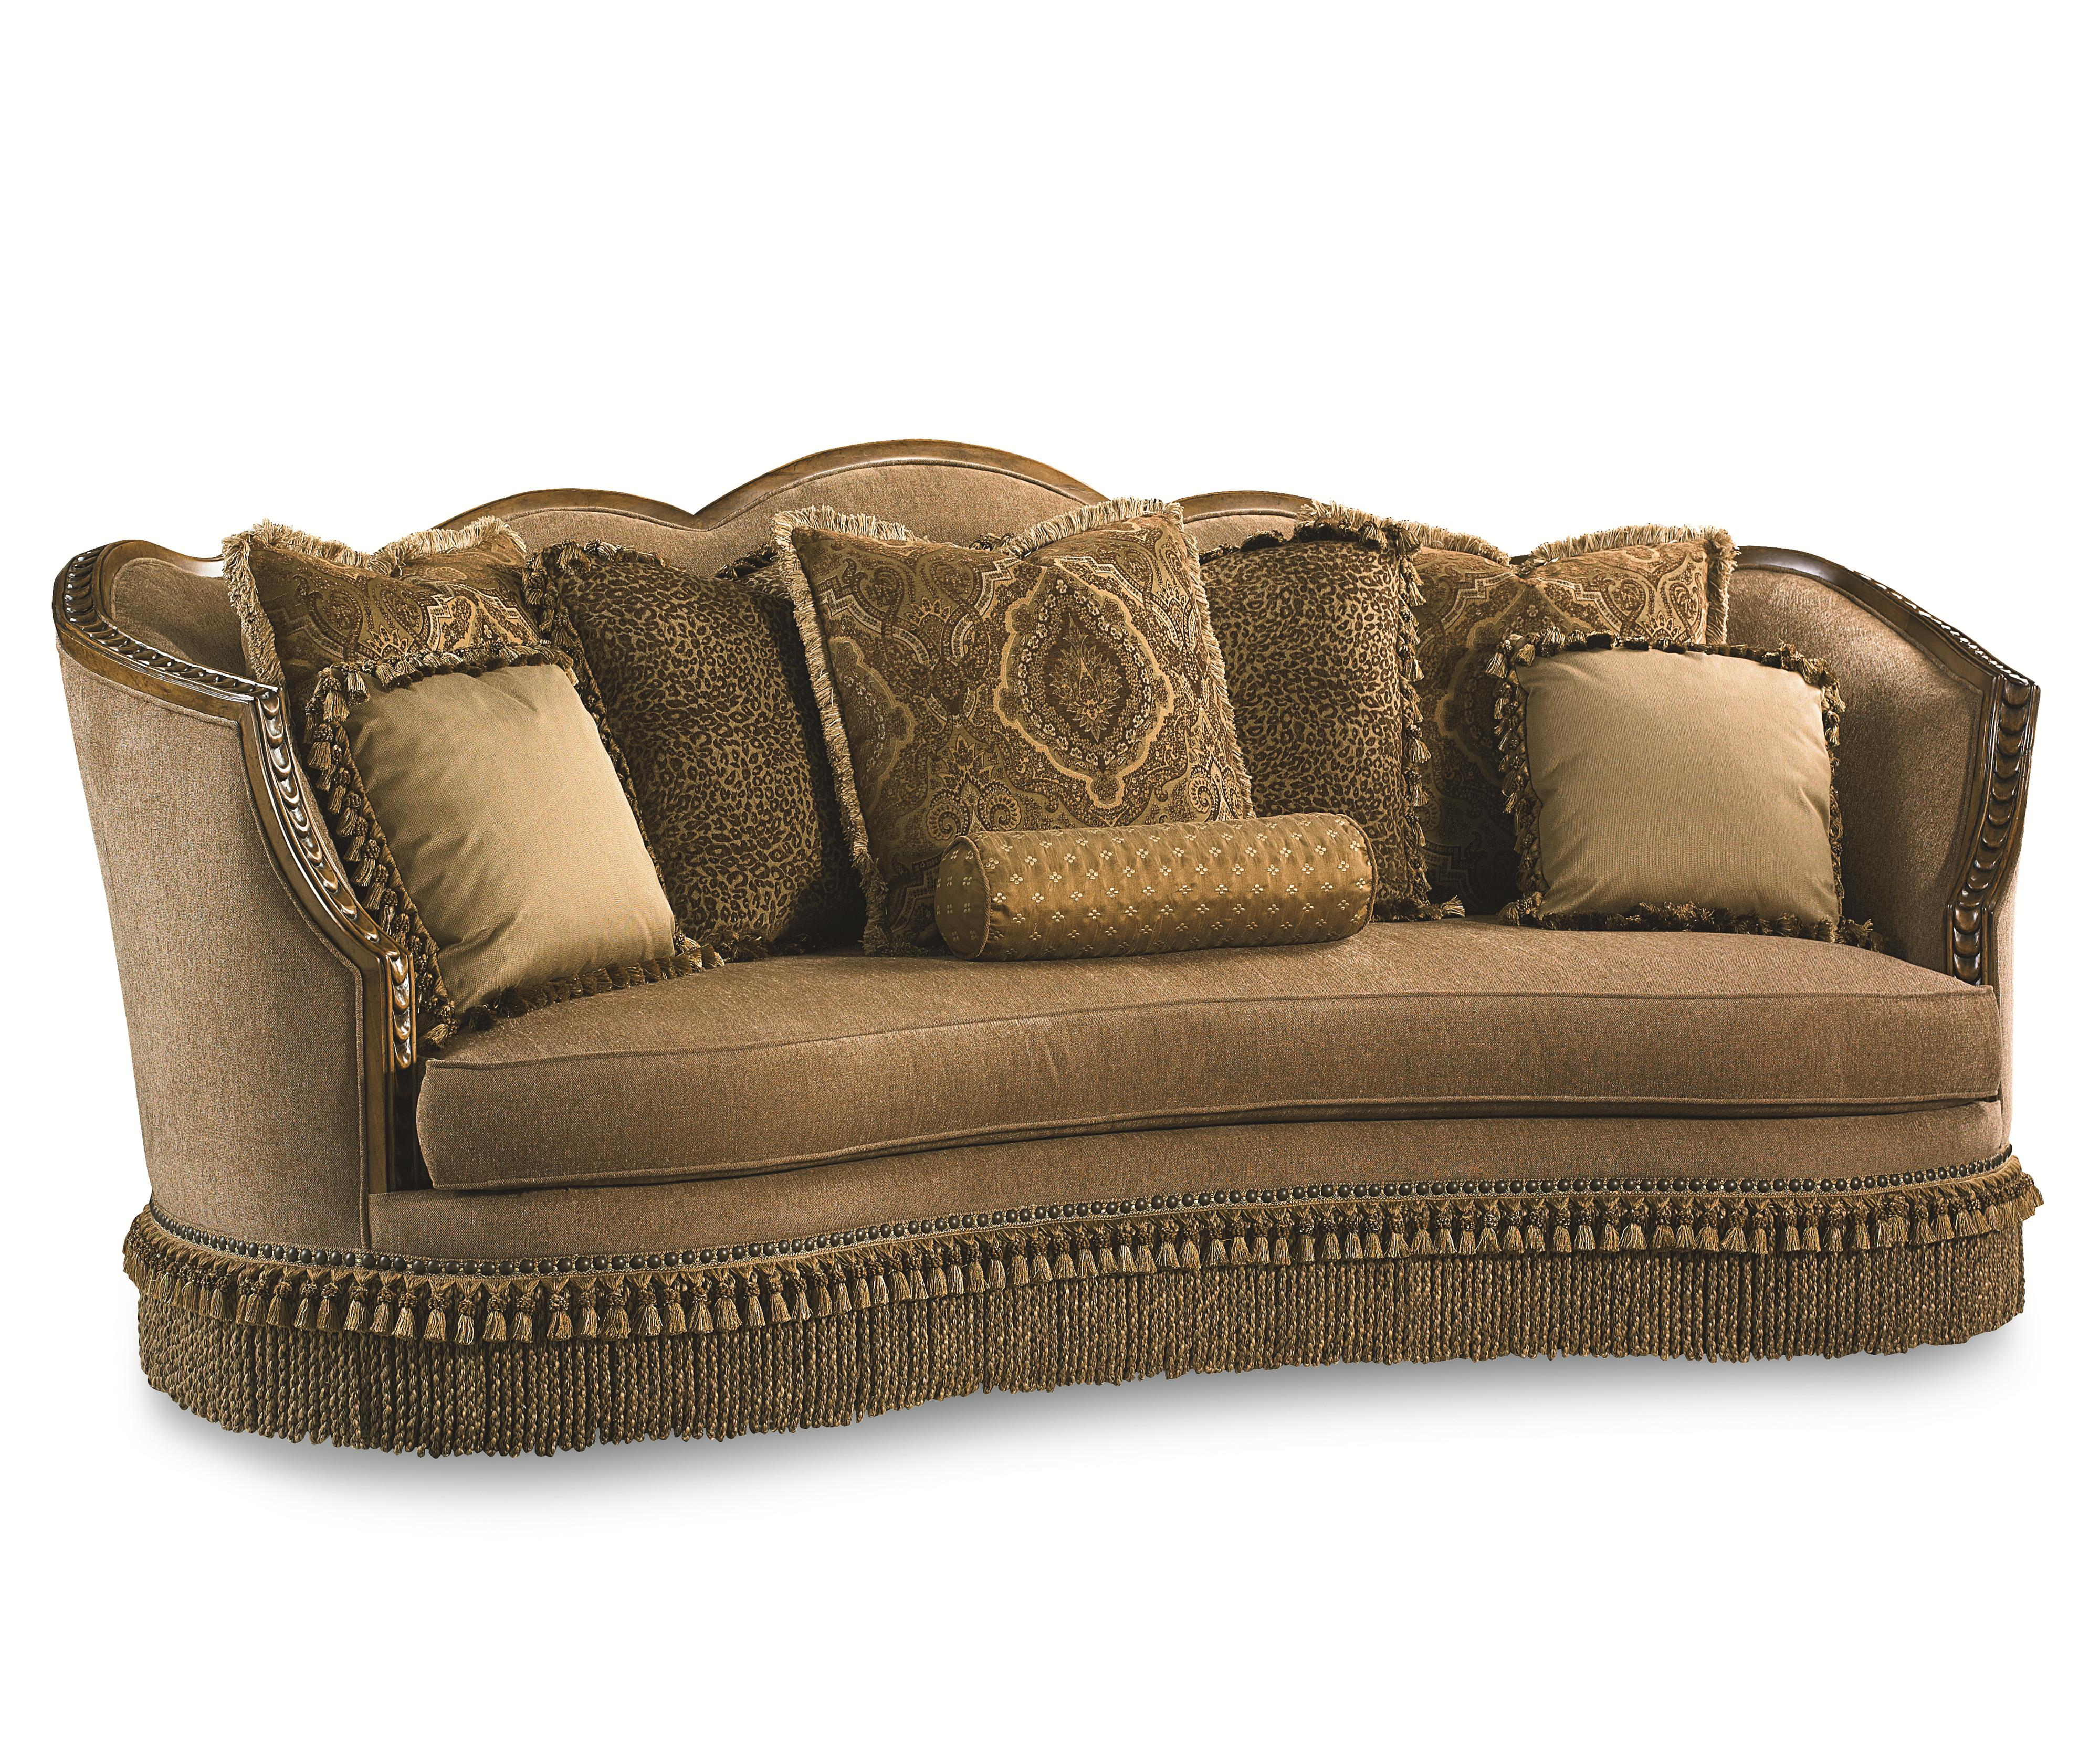 Sofa With Nailhead Trim And Exposed Wood Trim